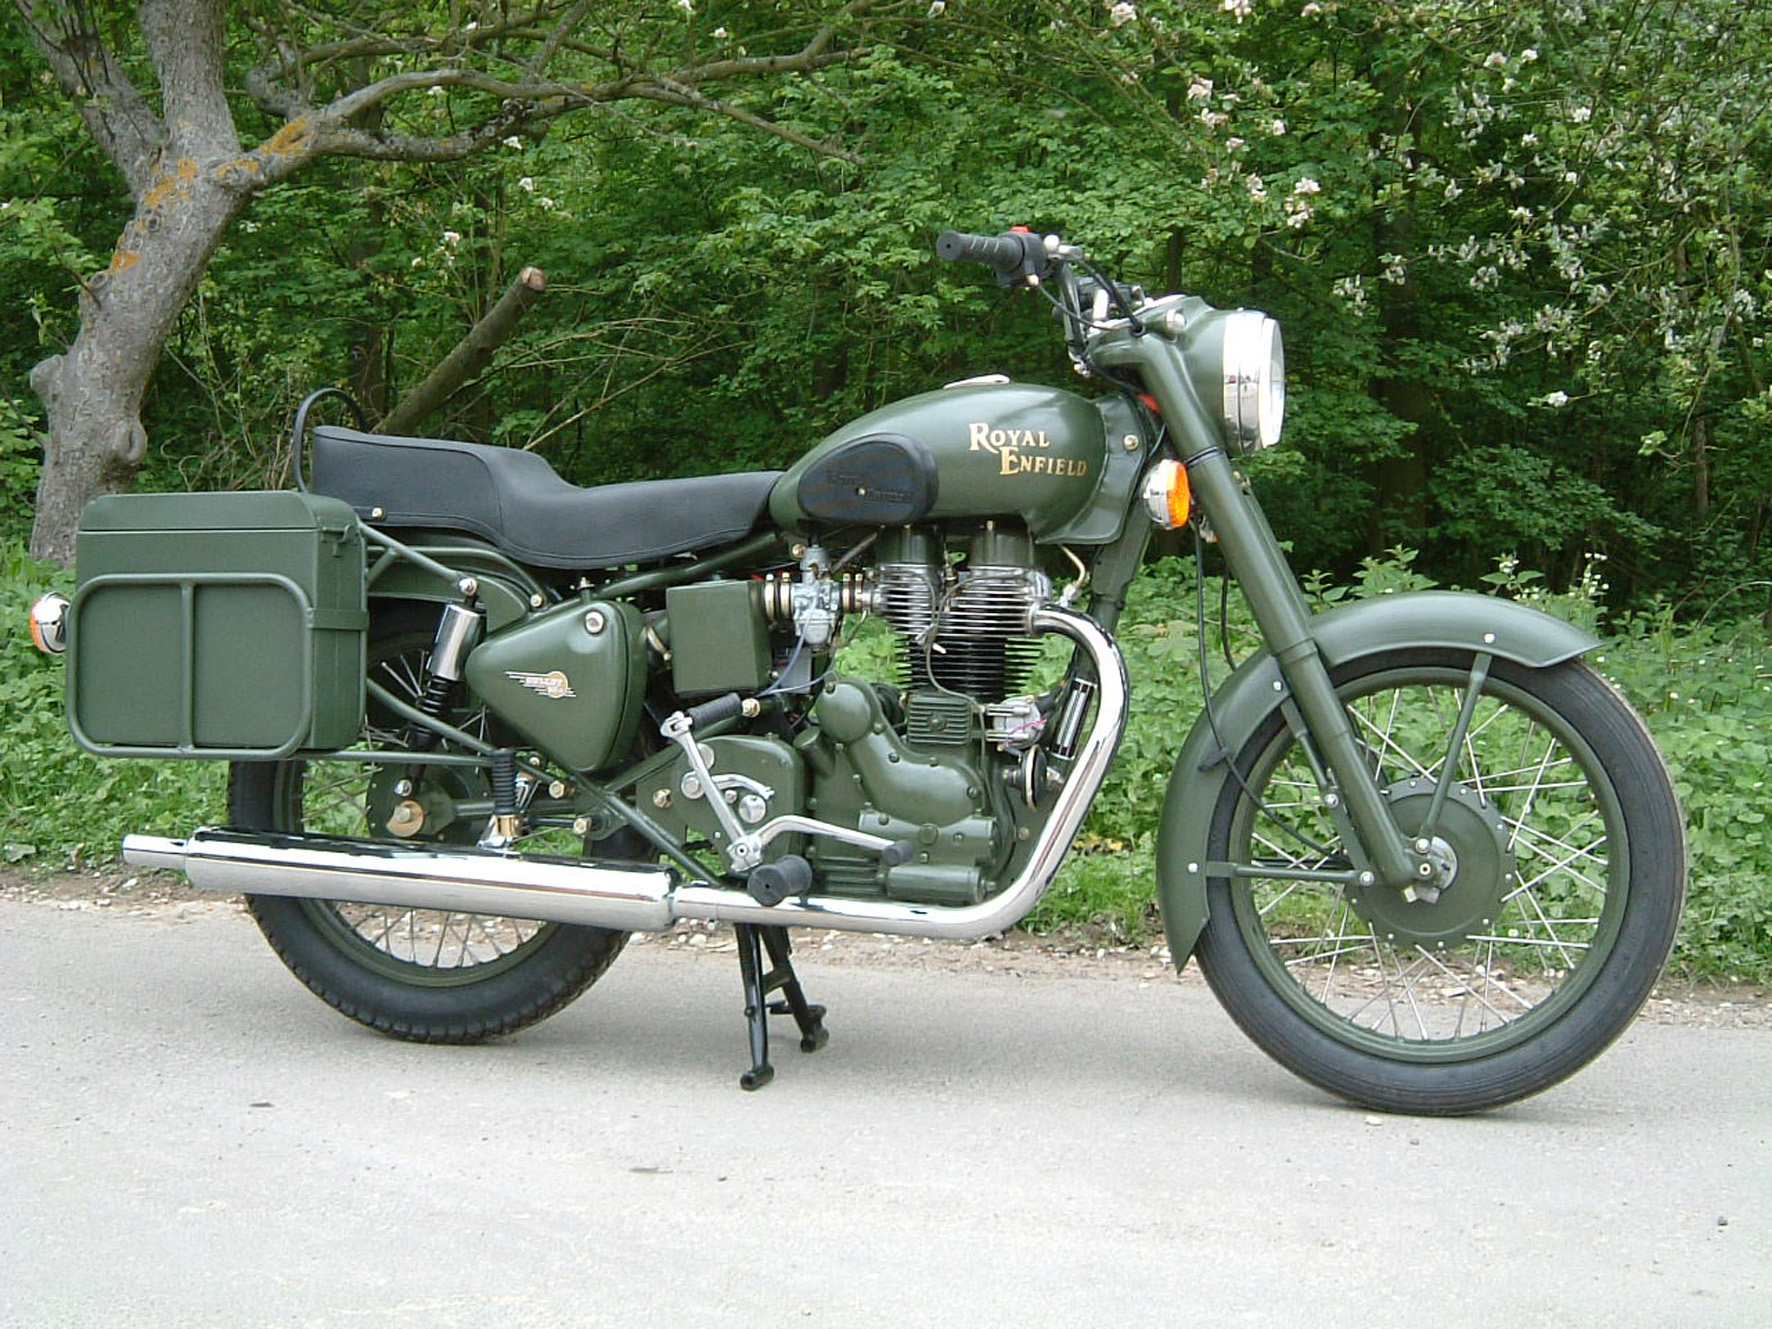 The 2005 Royal Enfield Motorcycle Range